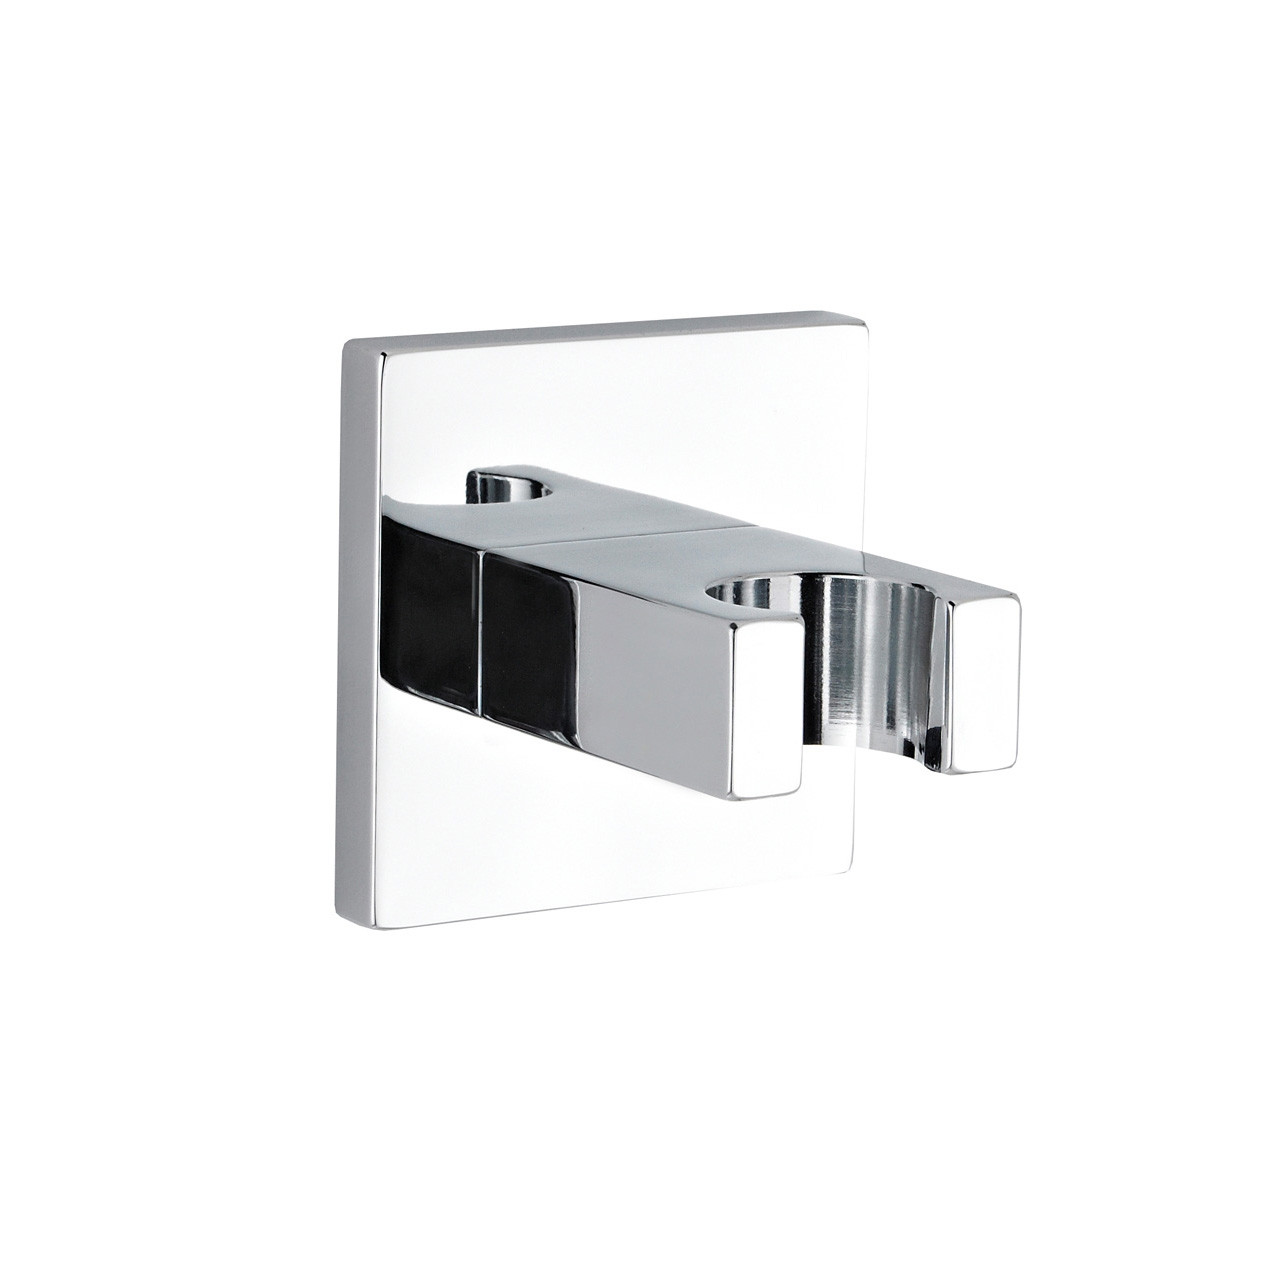 Ultra Square Wall Bracket - A3794